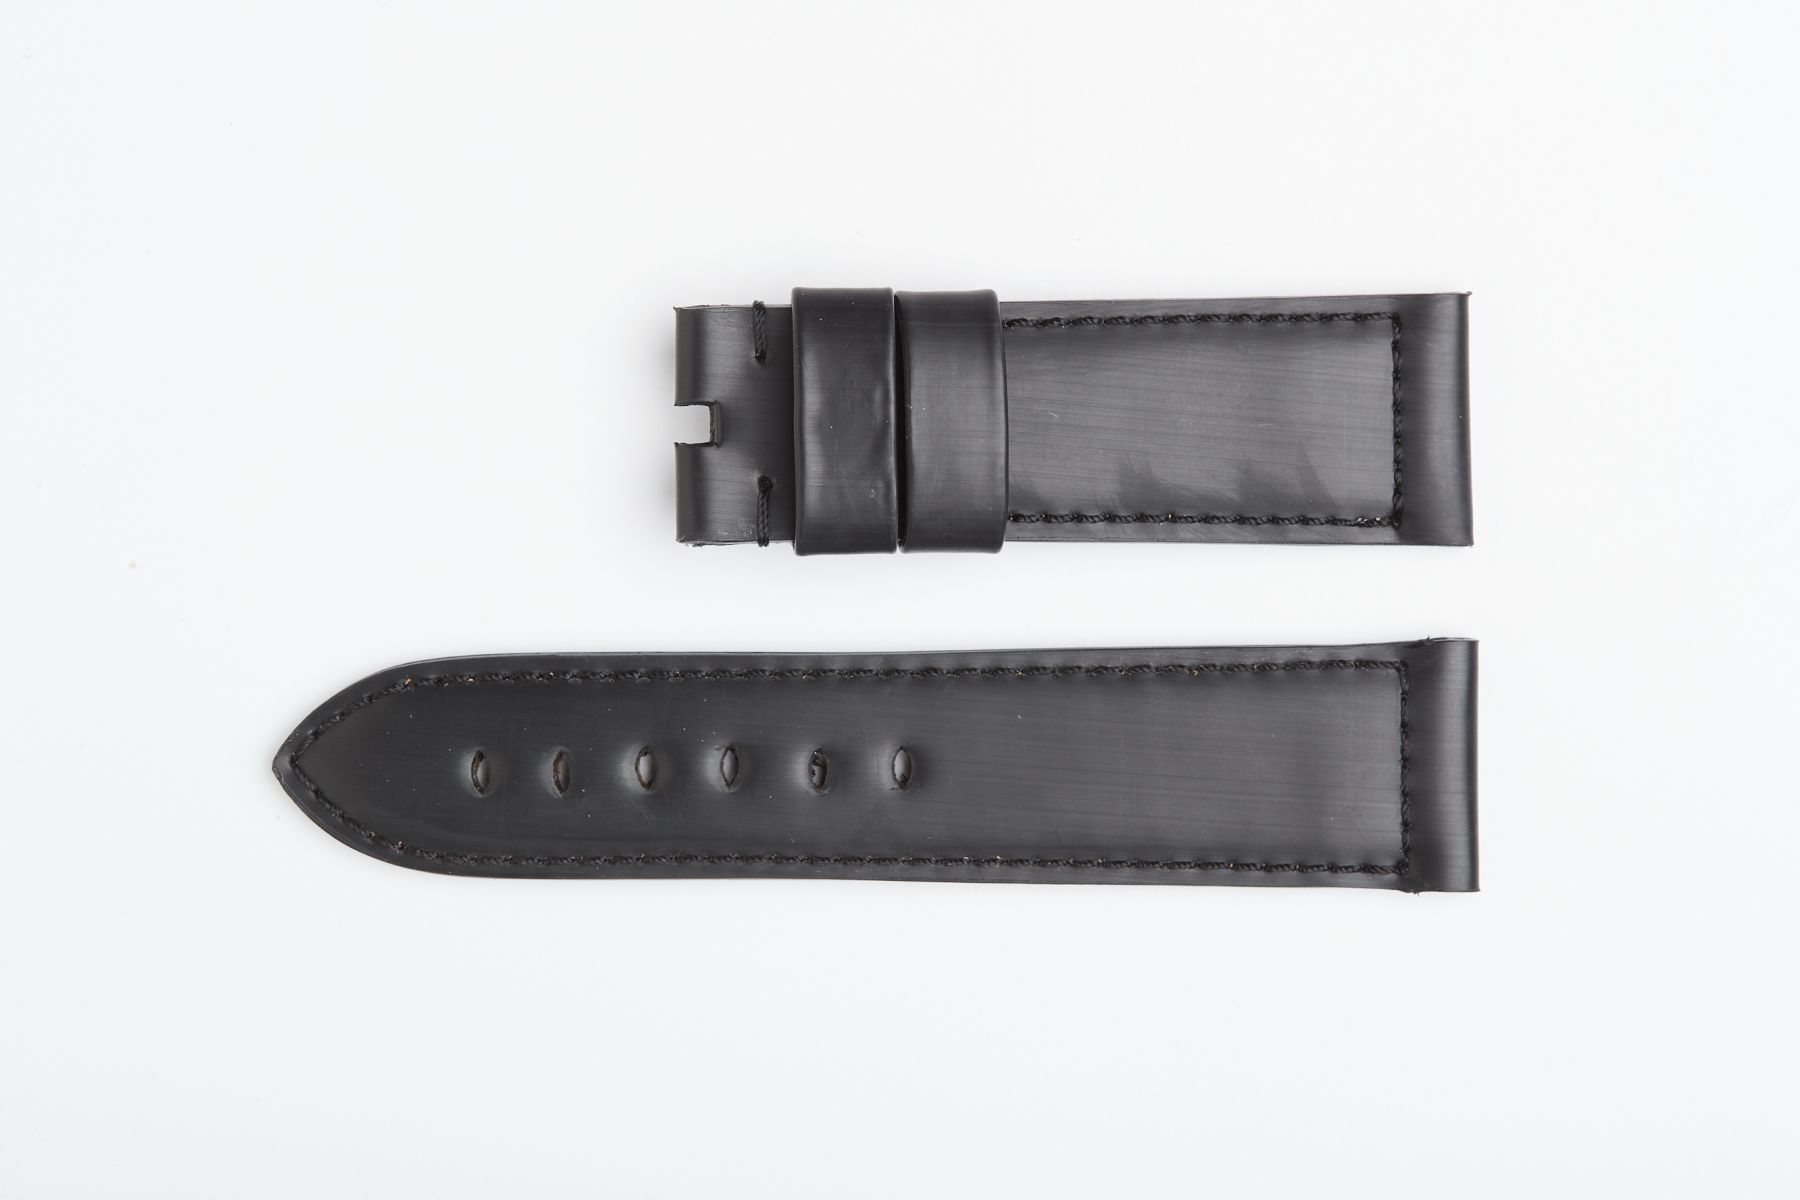 Onyx Black Recycled Rubber strap 24mm for Panerai style timepieces. Vegan style